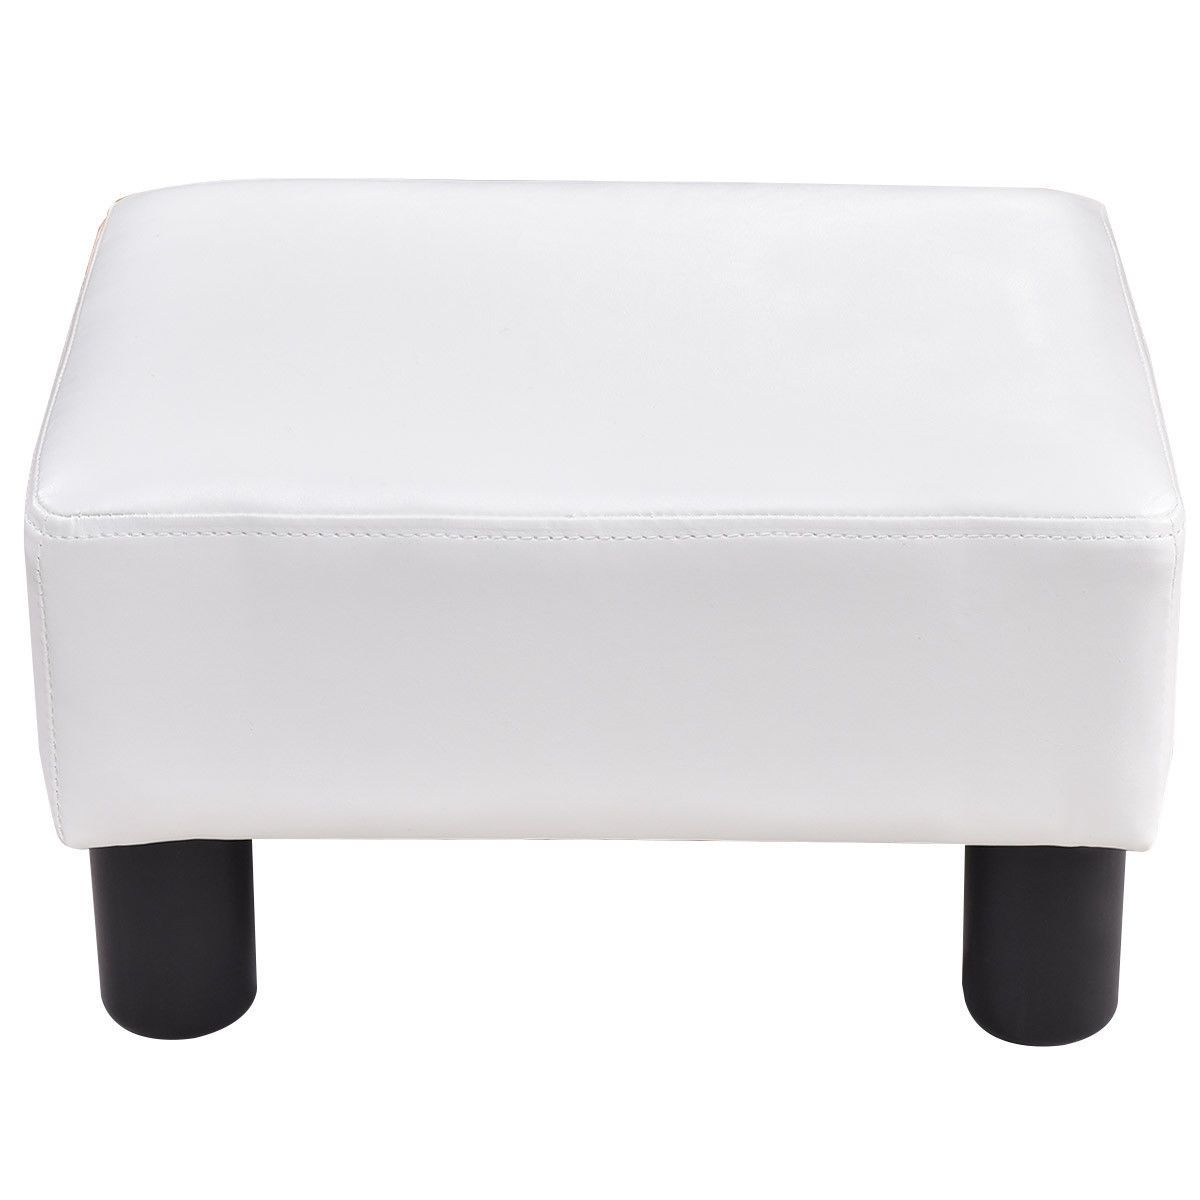 Small Pu Leather Rectangular Seat Ottoman Footstool In 2020